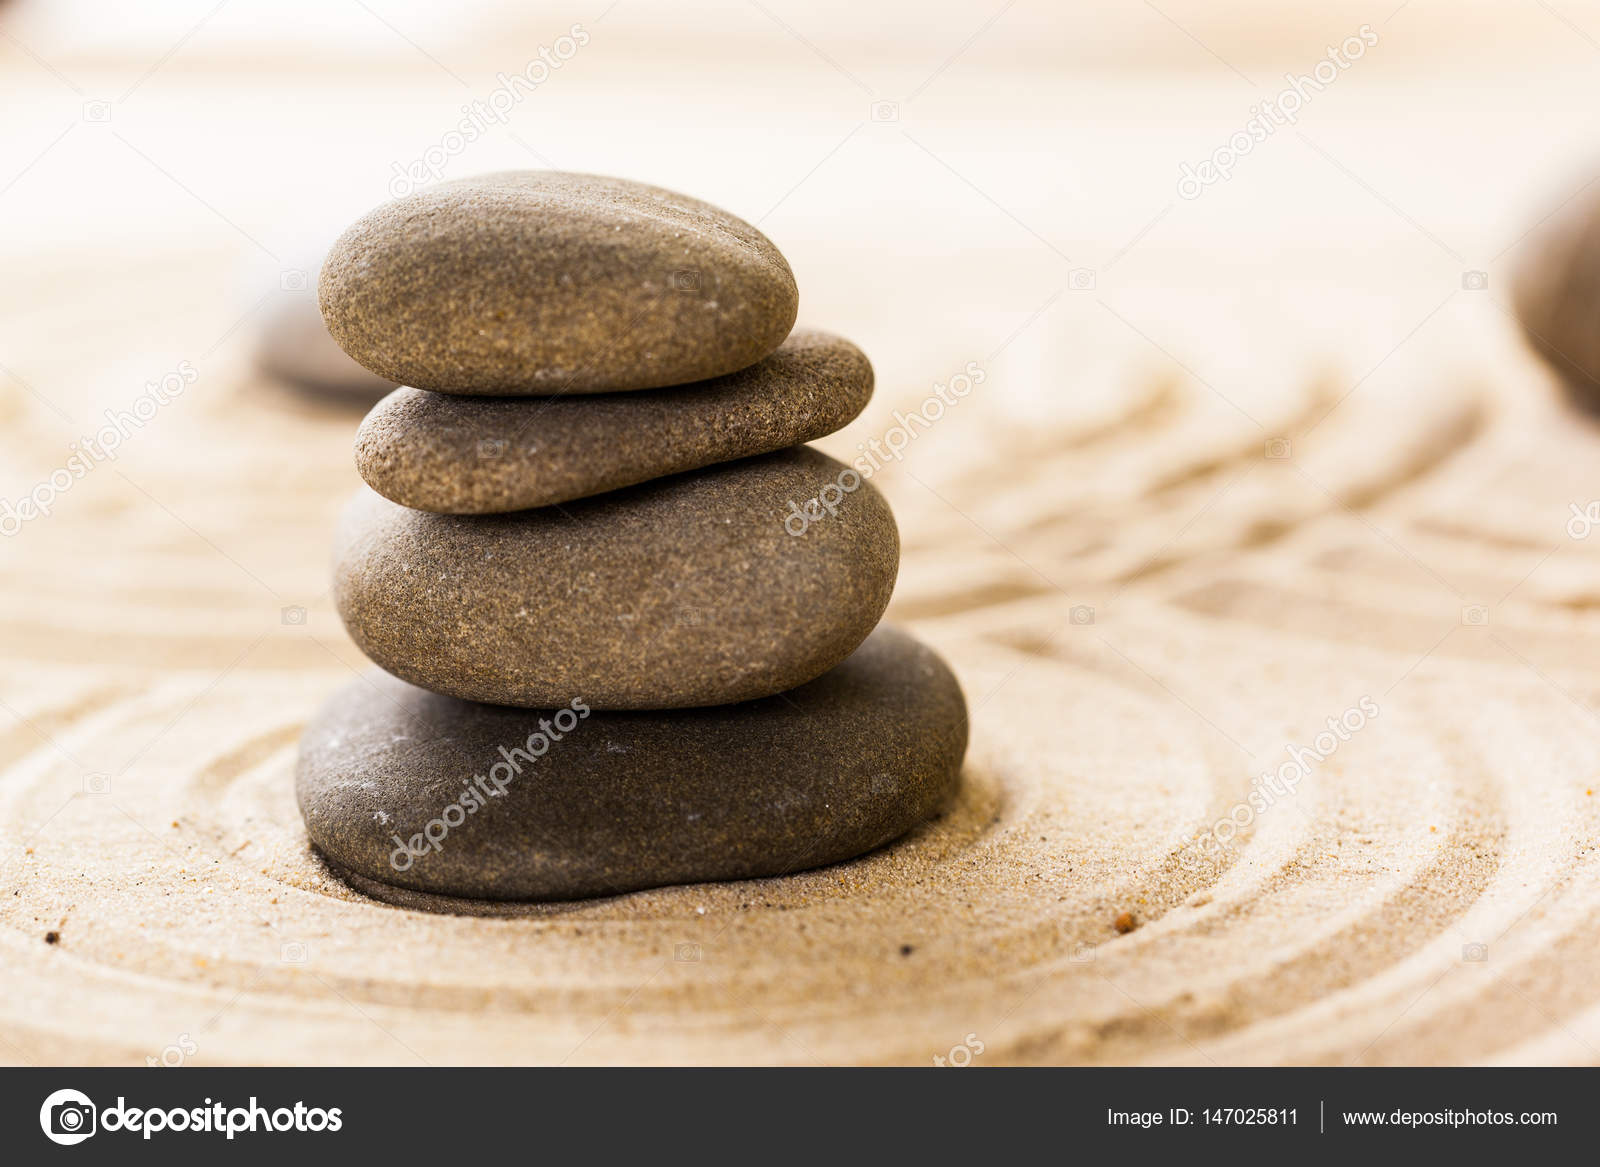 Sand garden for meditation — Stock Photo © Fotofabrika #147025811